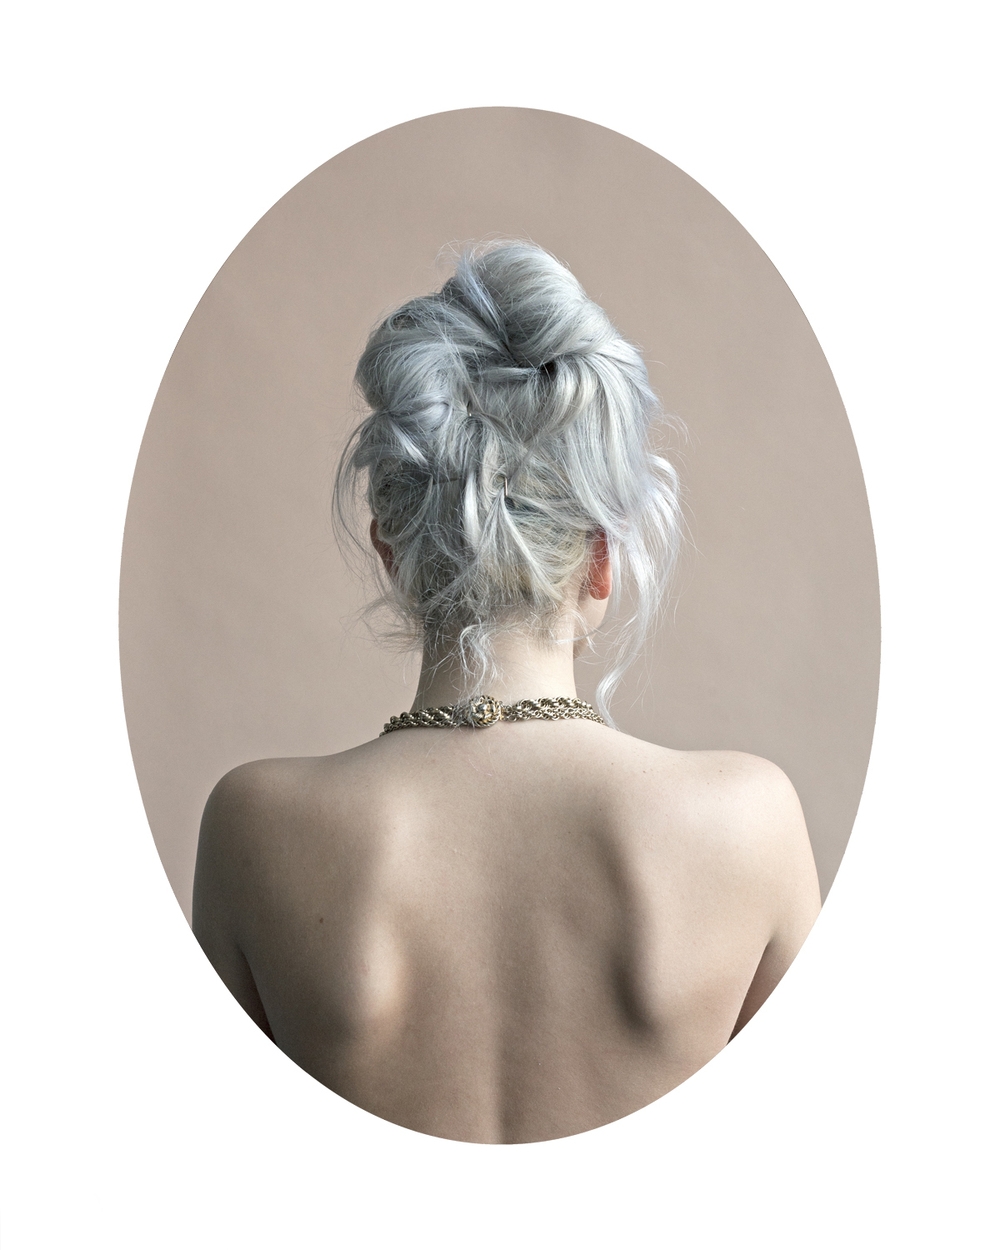 Devon (Silver)  from the series  A Modern Hair Study ,  Tara Bogart